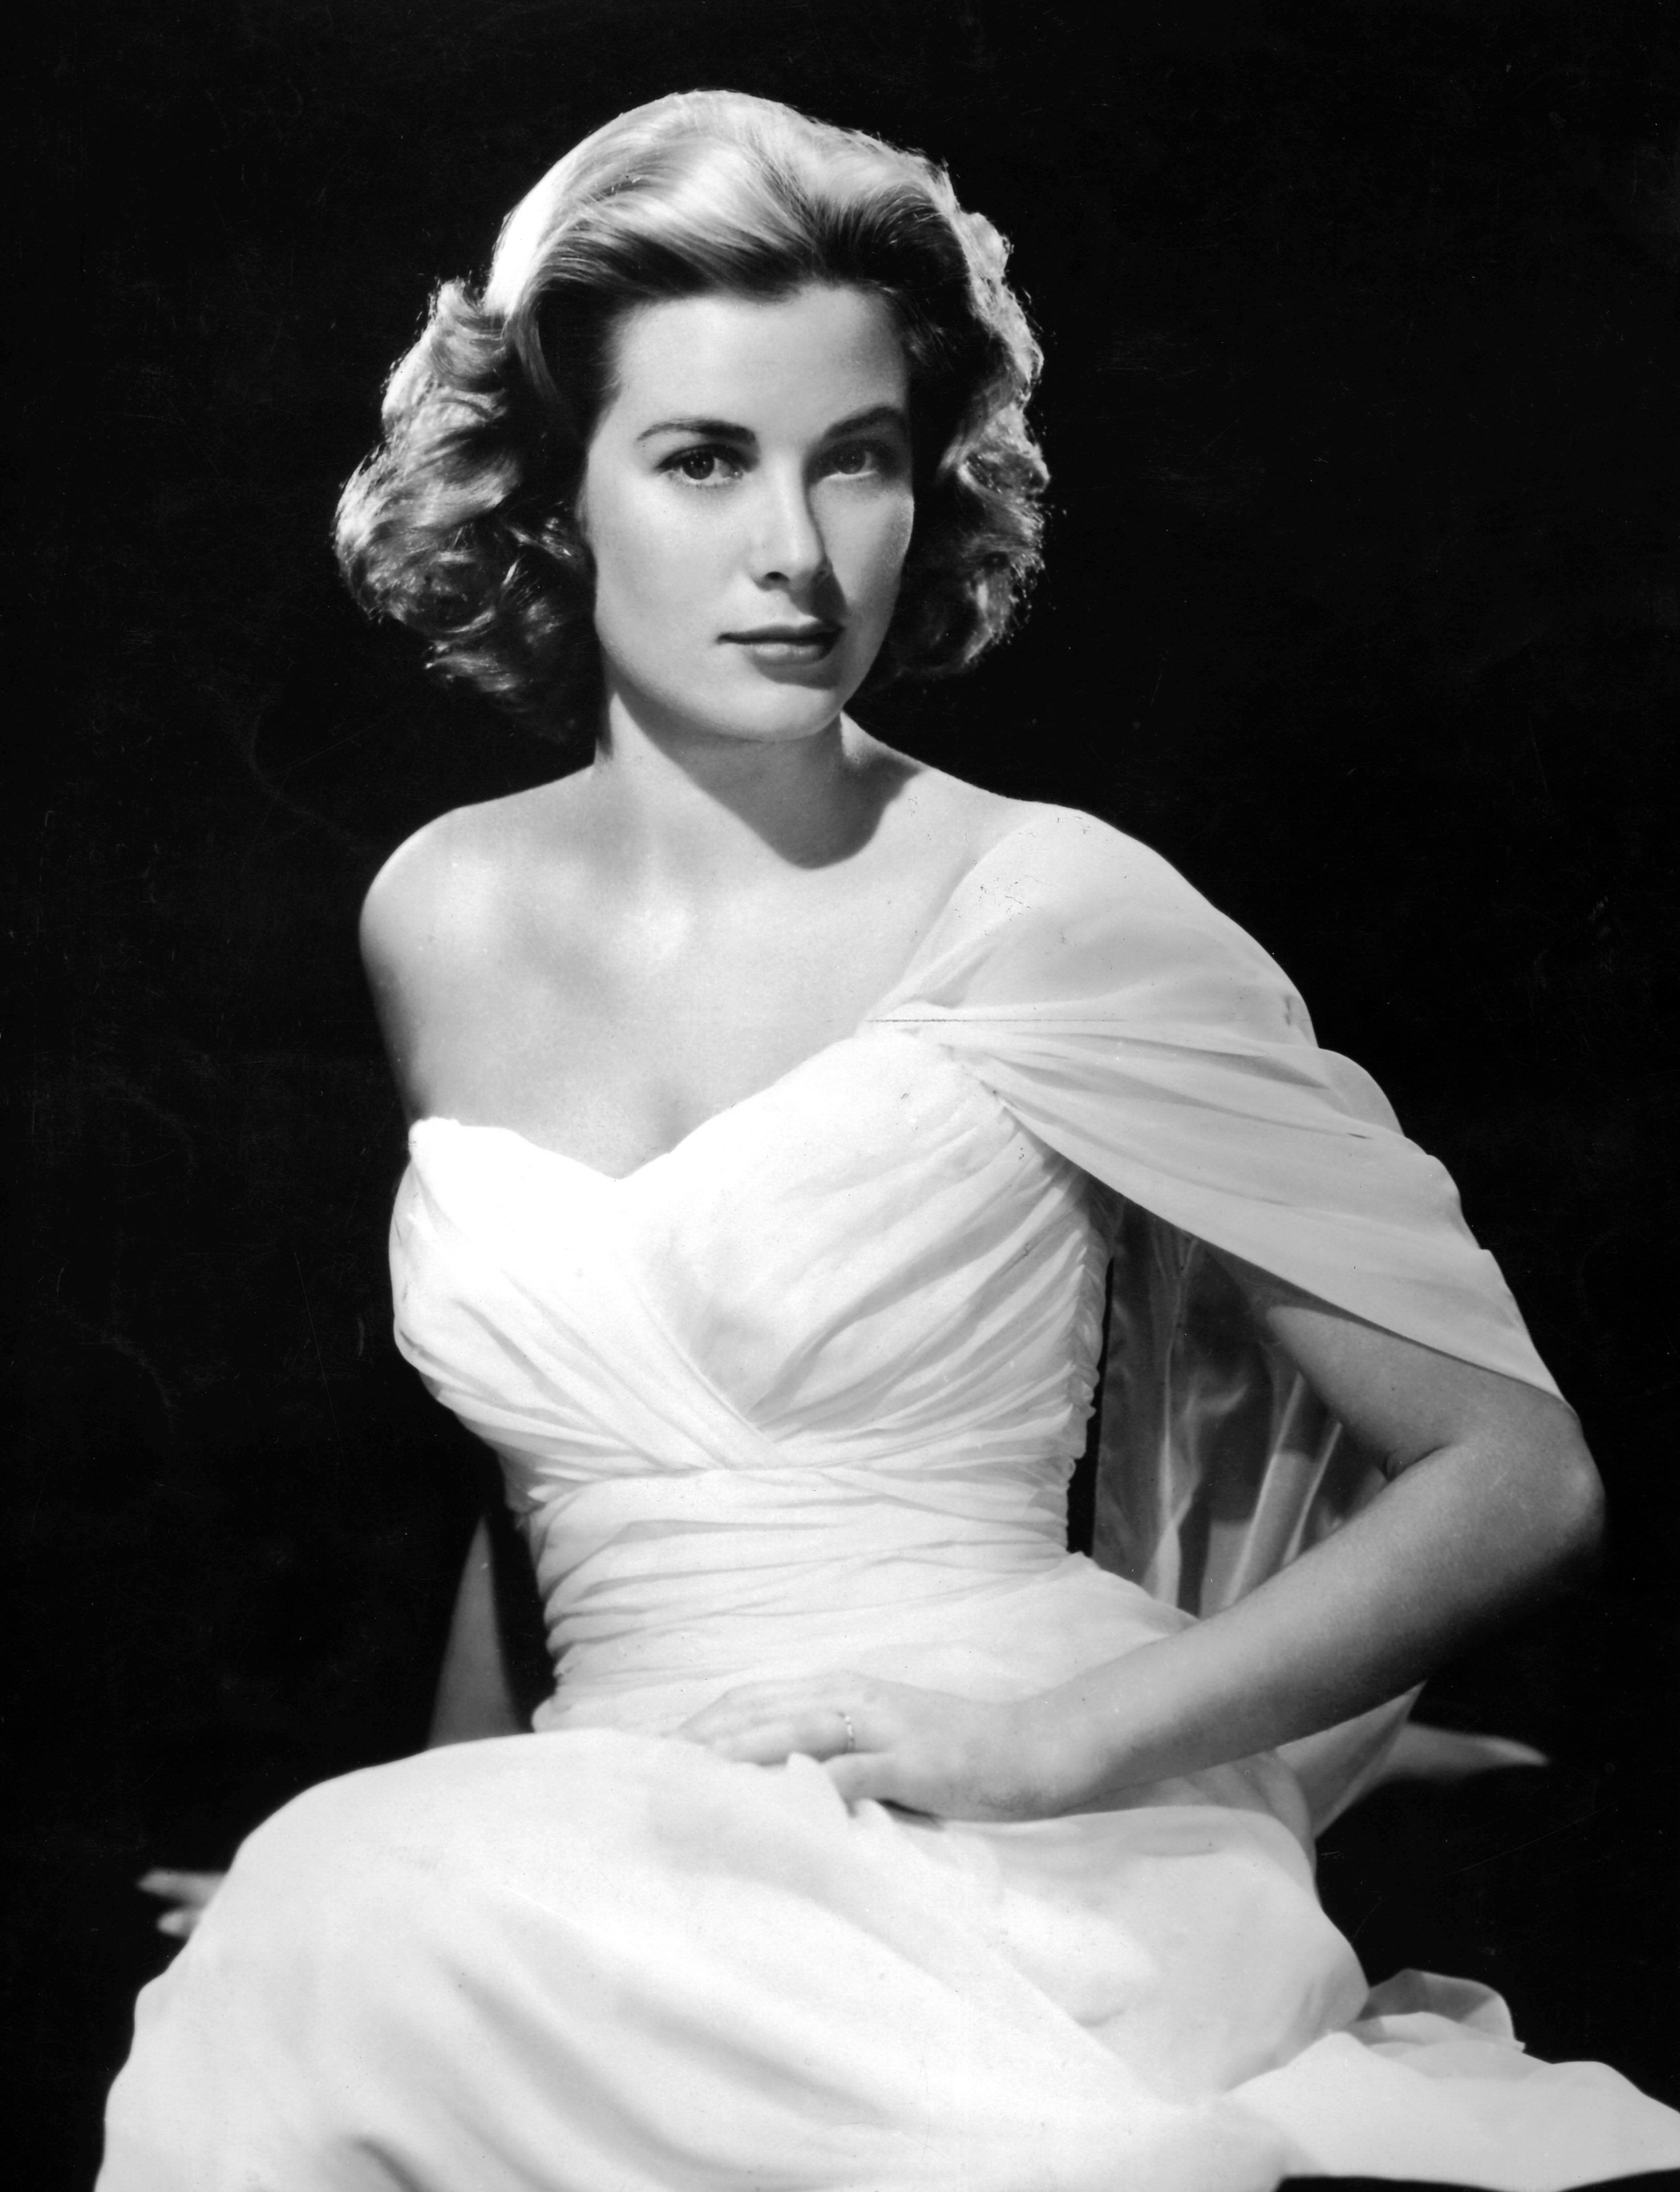 10 most stylish women of all time Princess grace kelly